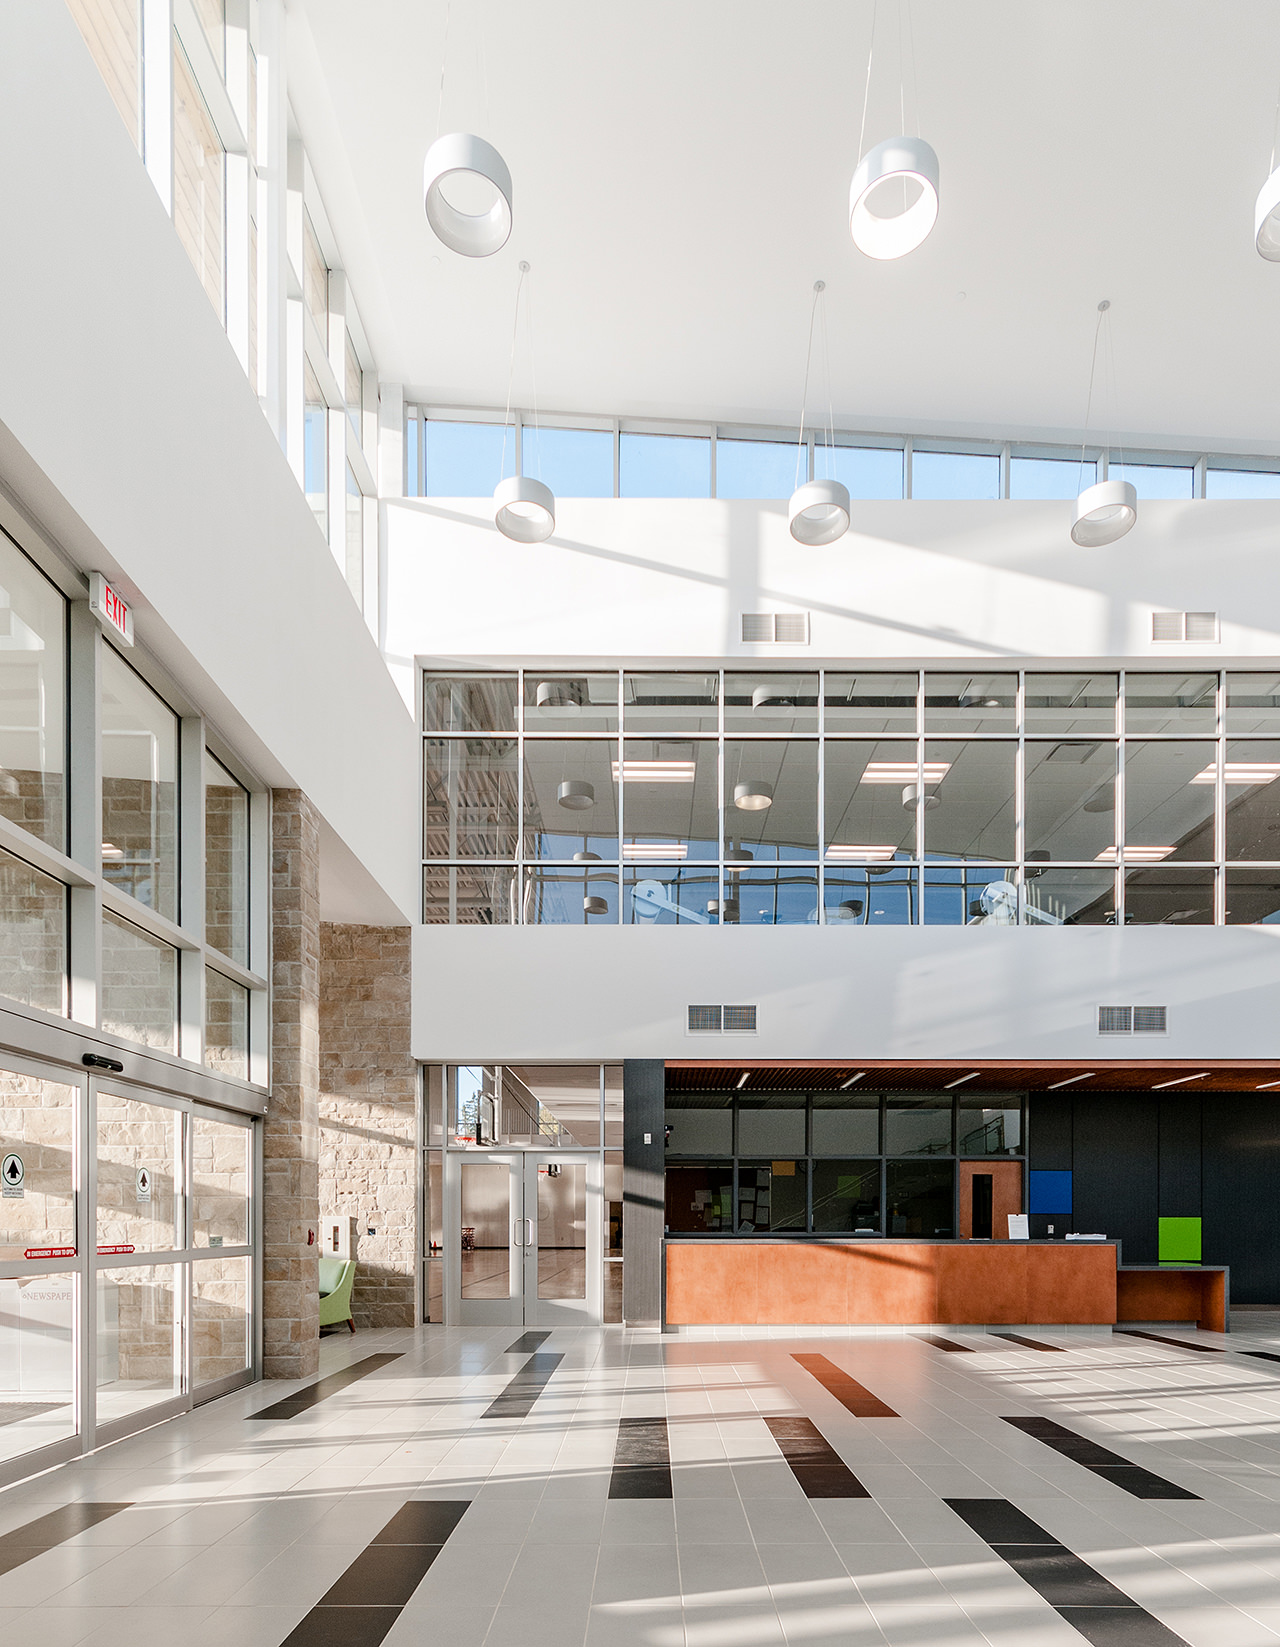 Komoka Recreation and Wellness Centre Atrium Photo shot by Scott Webb